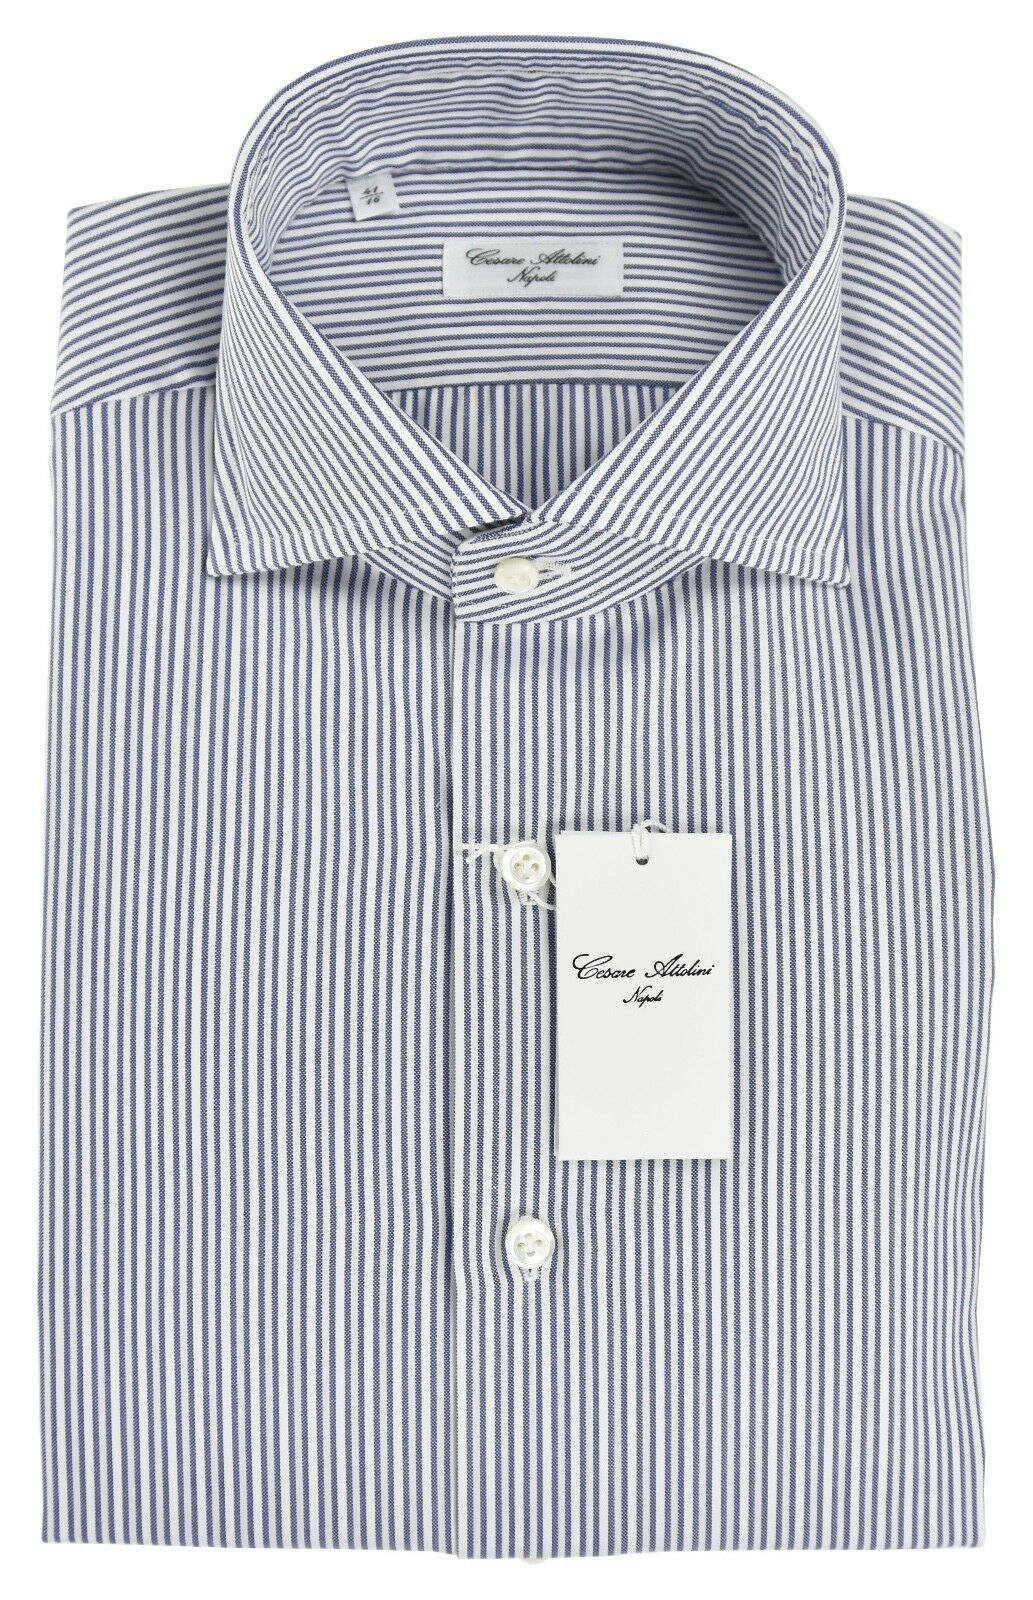 NEW 2018 CESARE ATTOLINI SHIRT 100% COTTON SIZE 16.5 US 42 CS512